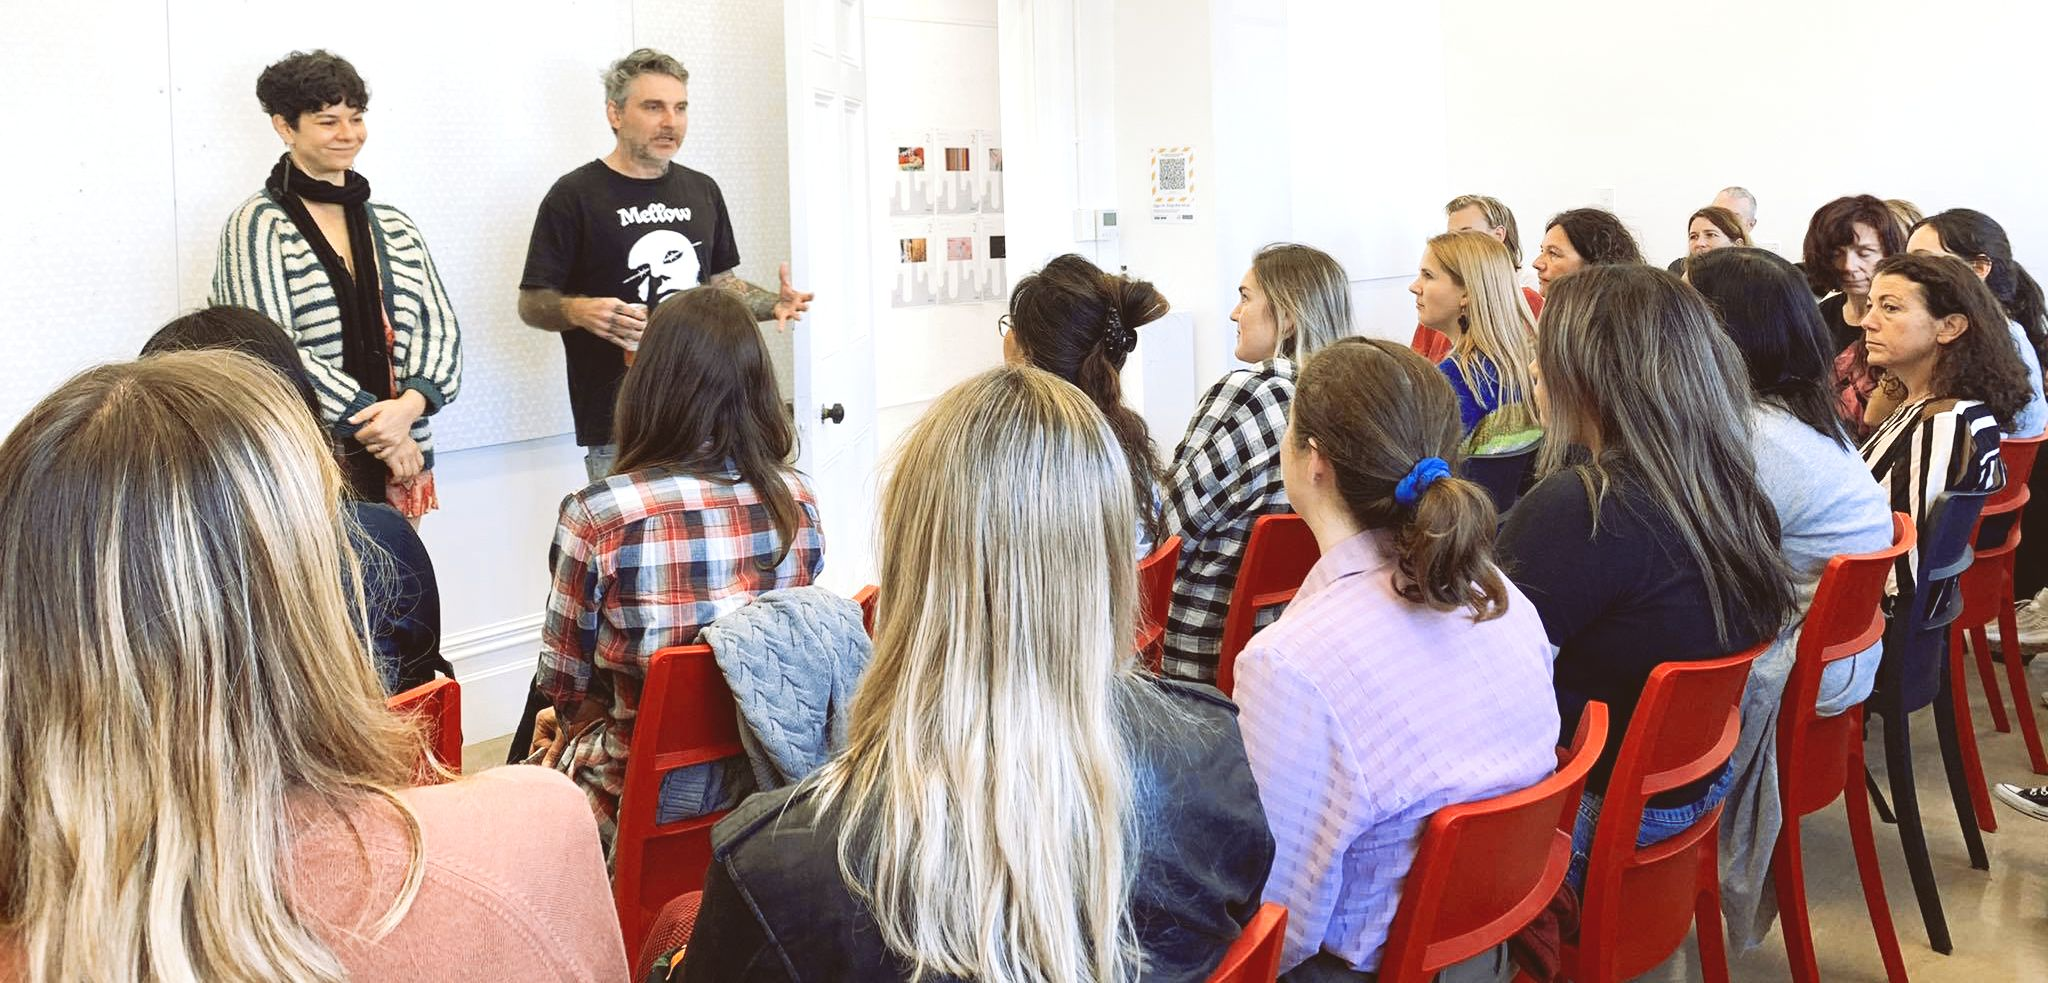 Dina Jezdic with fellow mentor Dominic Hoey addressing Toipoto cohort. Photo: Supplied.